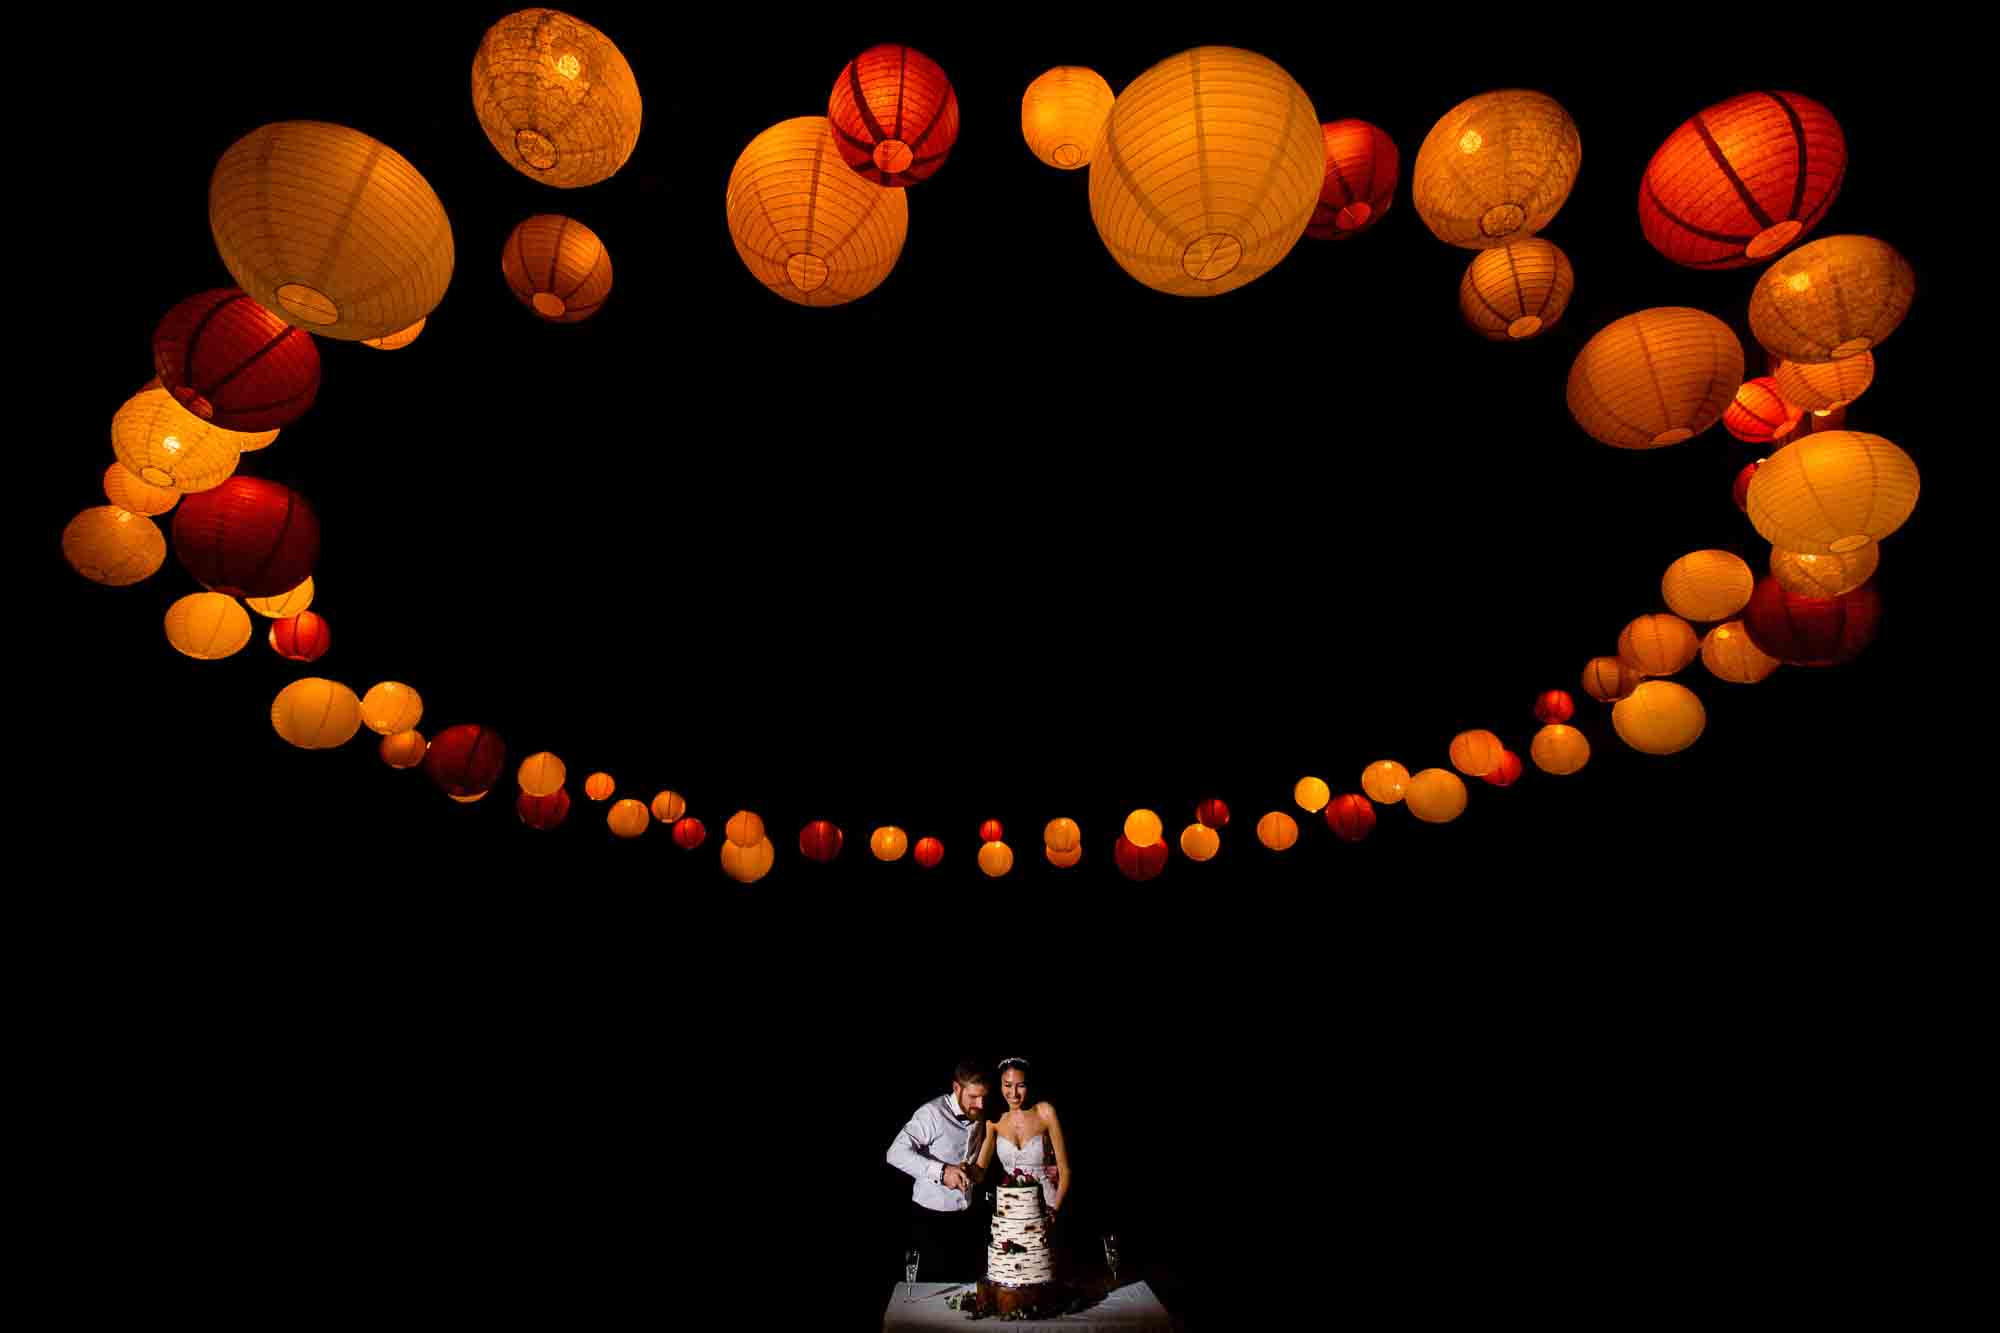 Couple cuts cake under golden lantern photo by JOS Studios : Jos and Tree Woodsmith